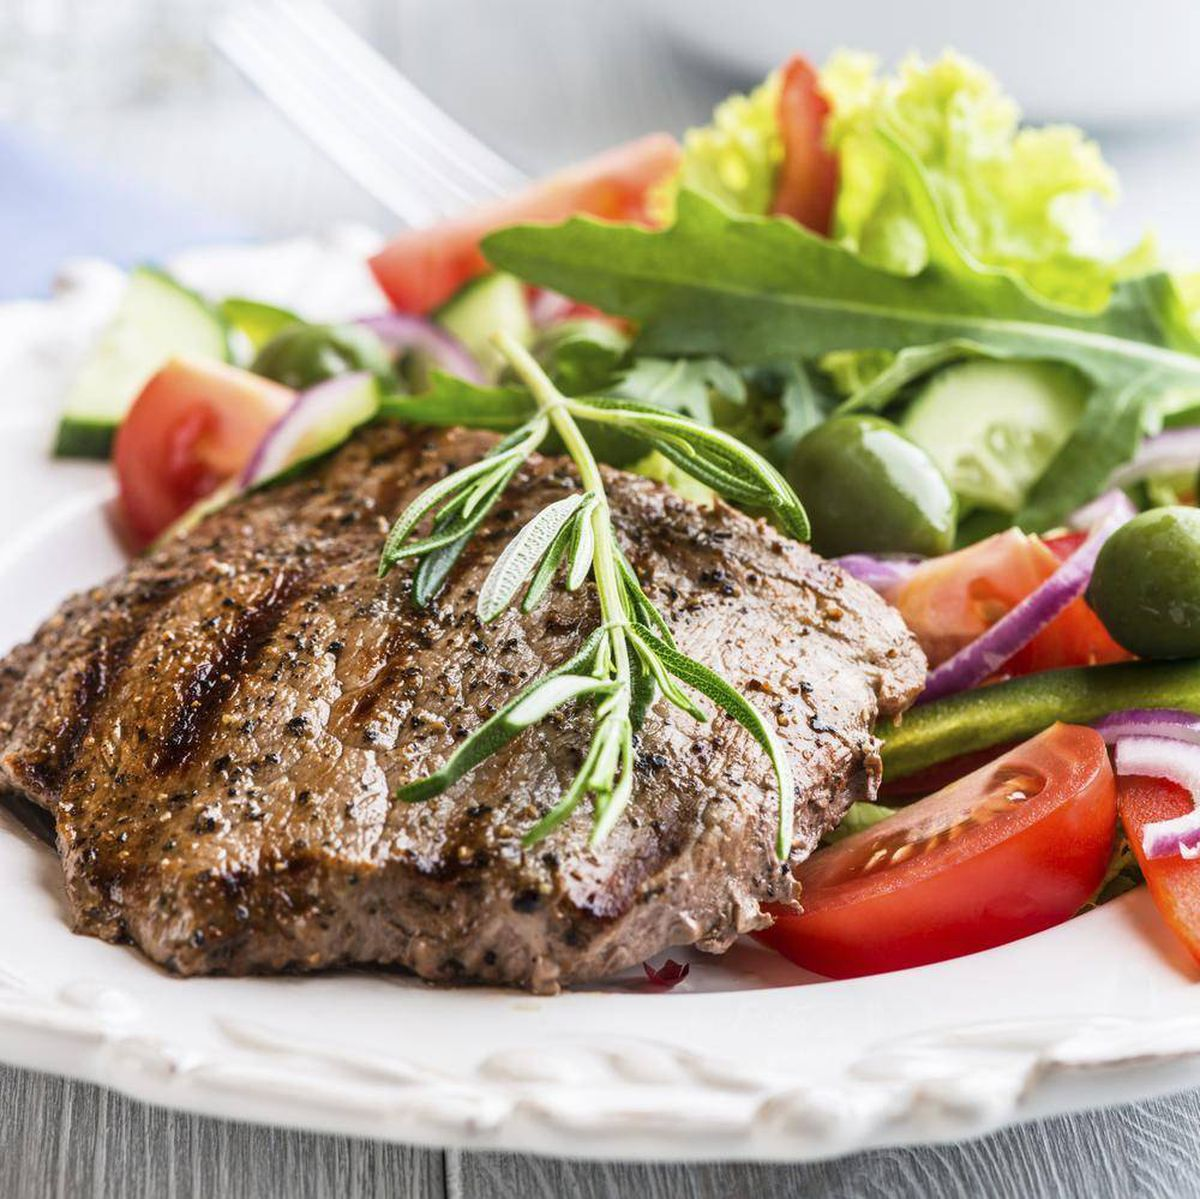 How can I get enough vitamin B12 if I don't eat meat? - The